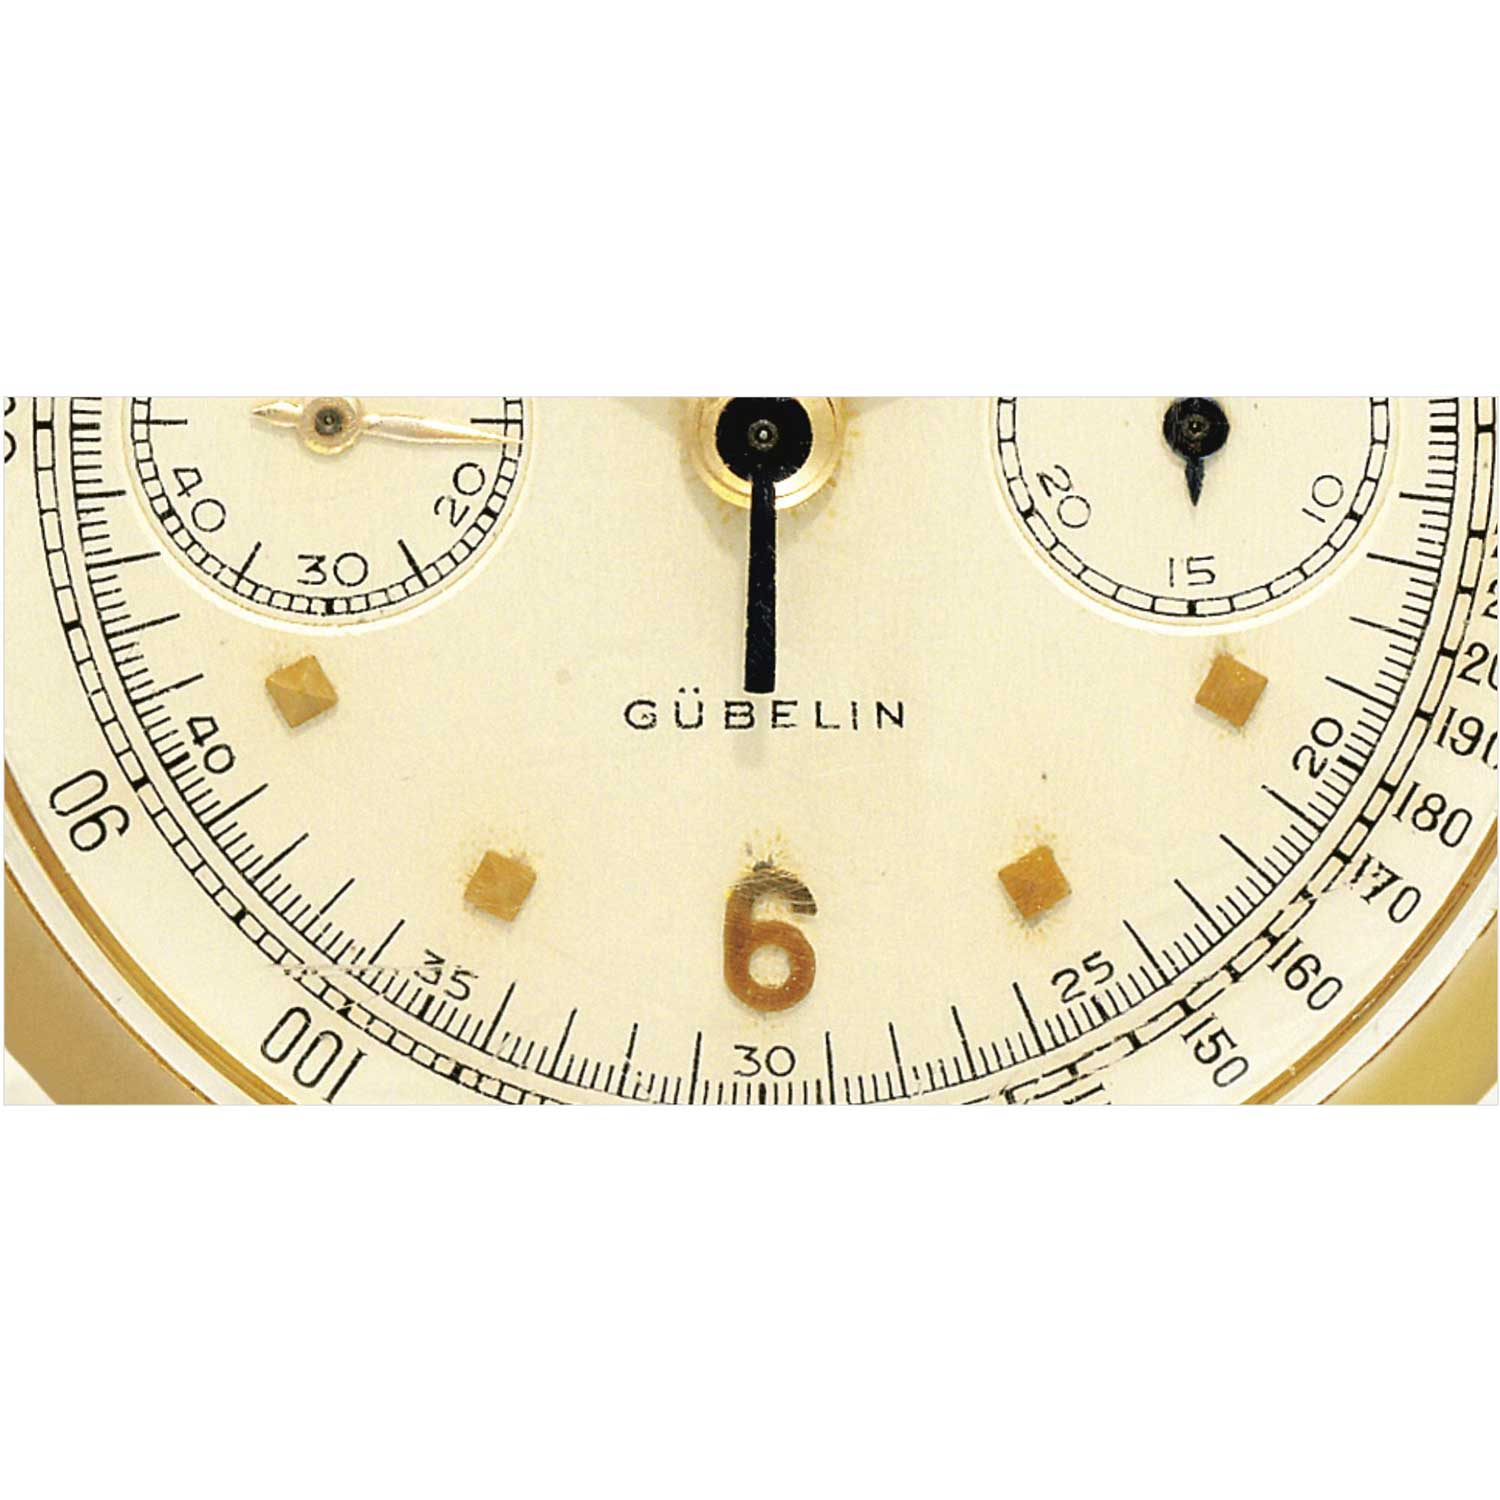 Gübelin stamp on the 1953 Patek Philippe ref. 1579 yellow gold chronograph with silvered dial, applied gold faceted square and Arabic numerals, retailed by Gübelin (Image: Sothebys.com)